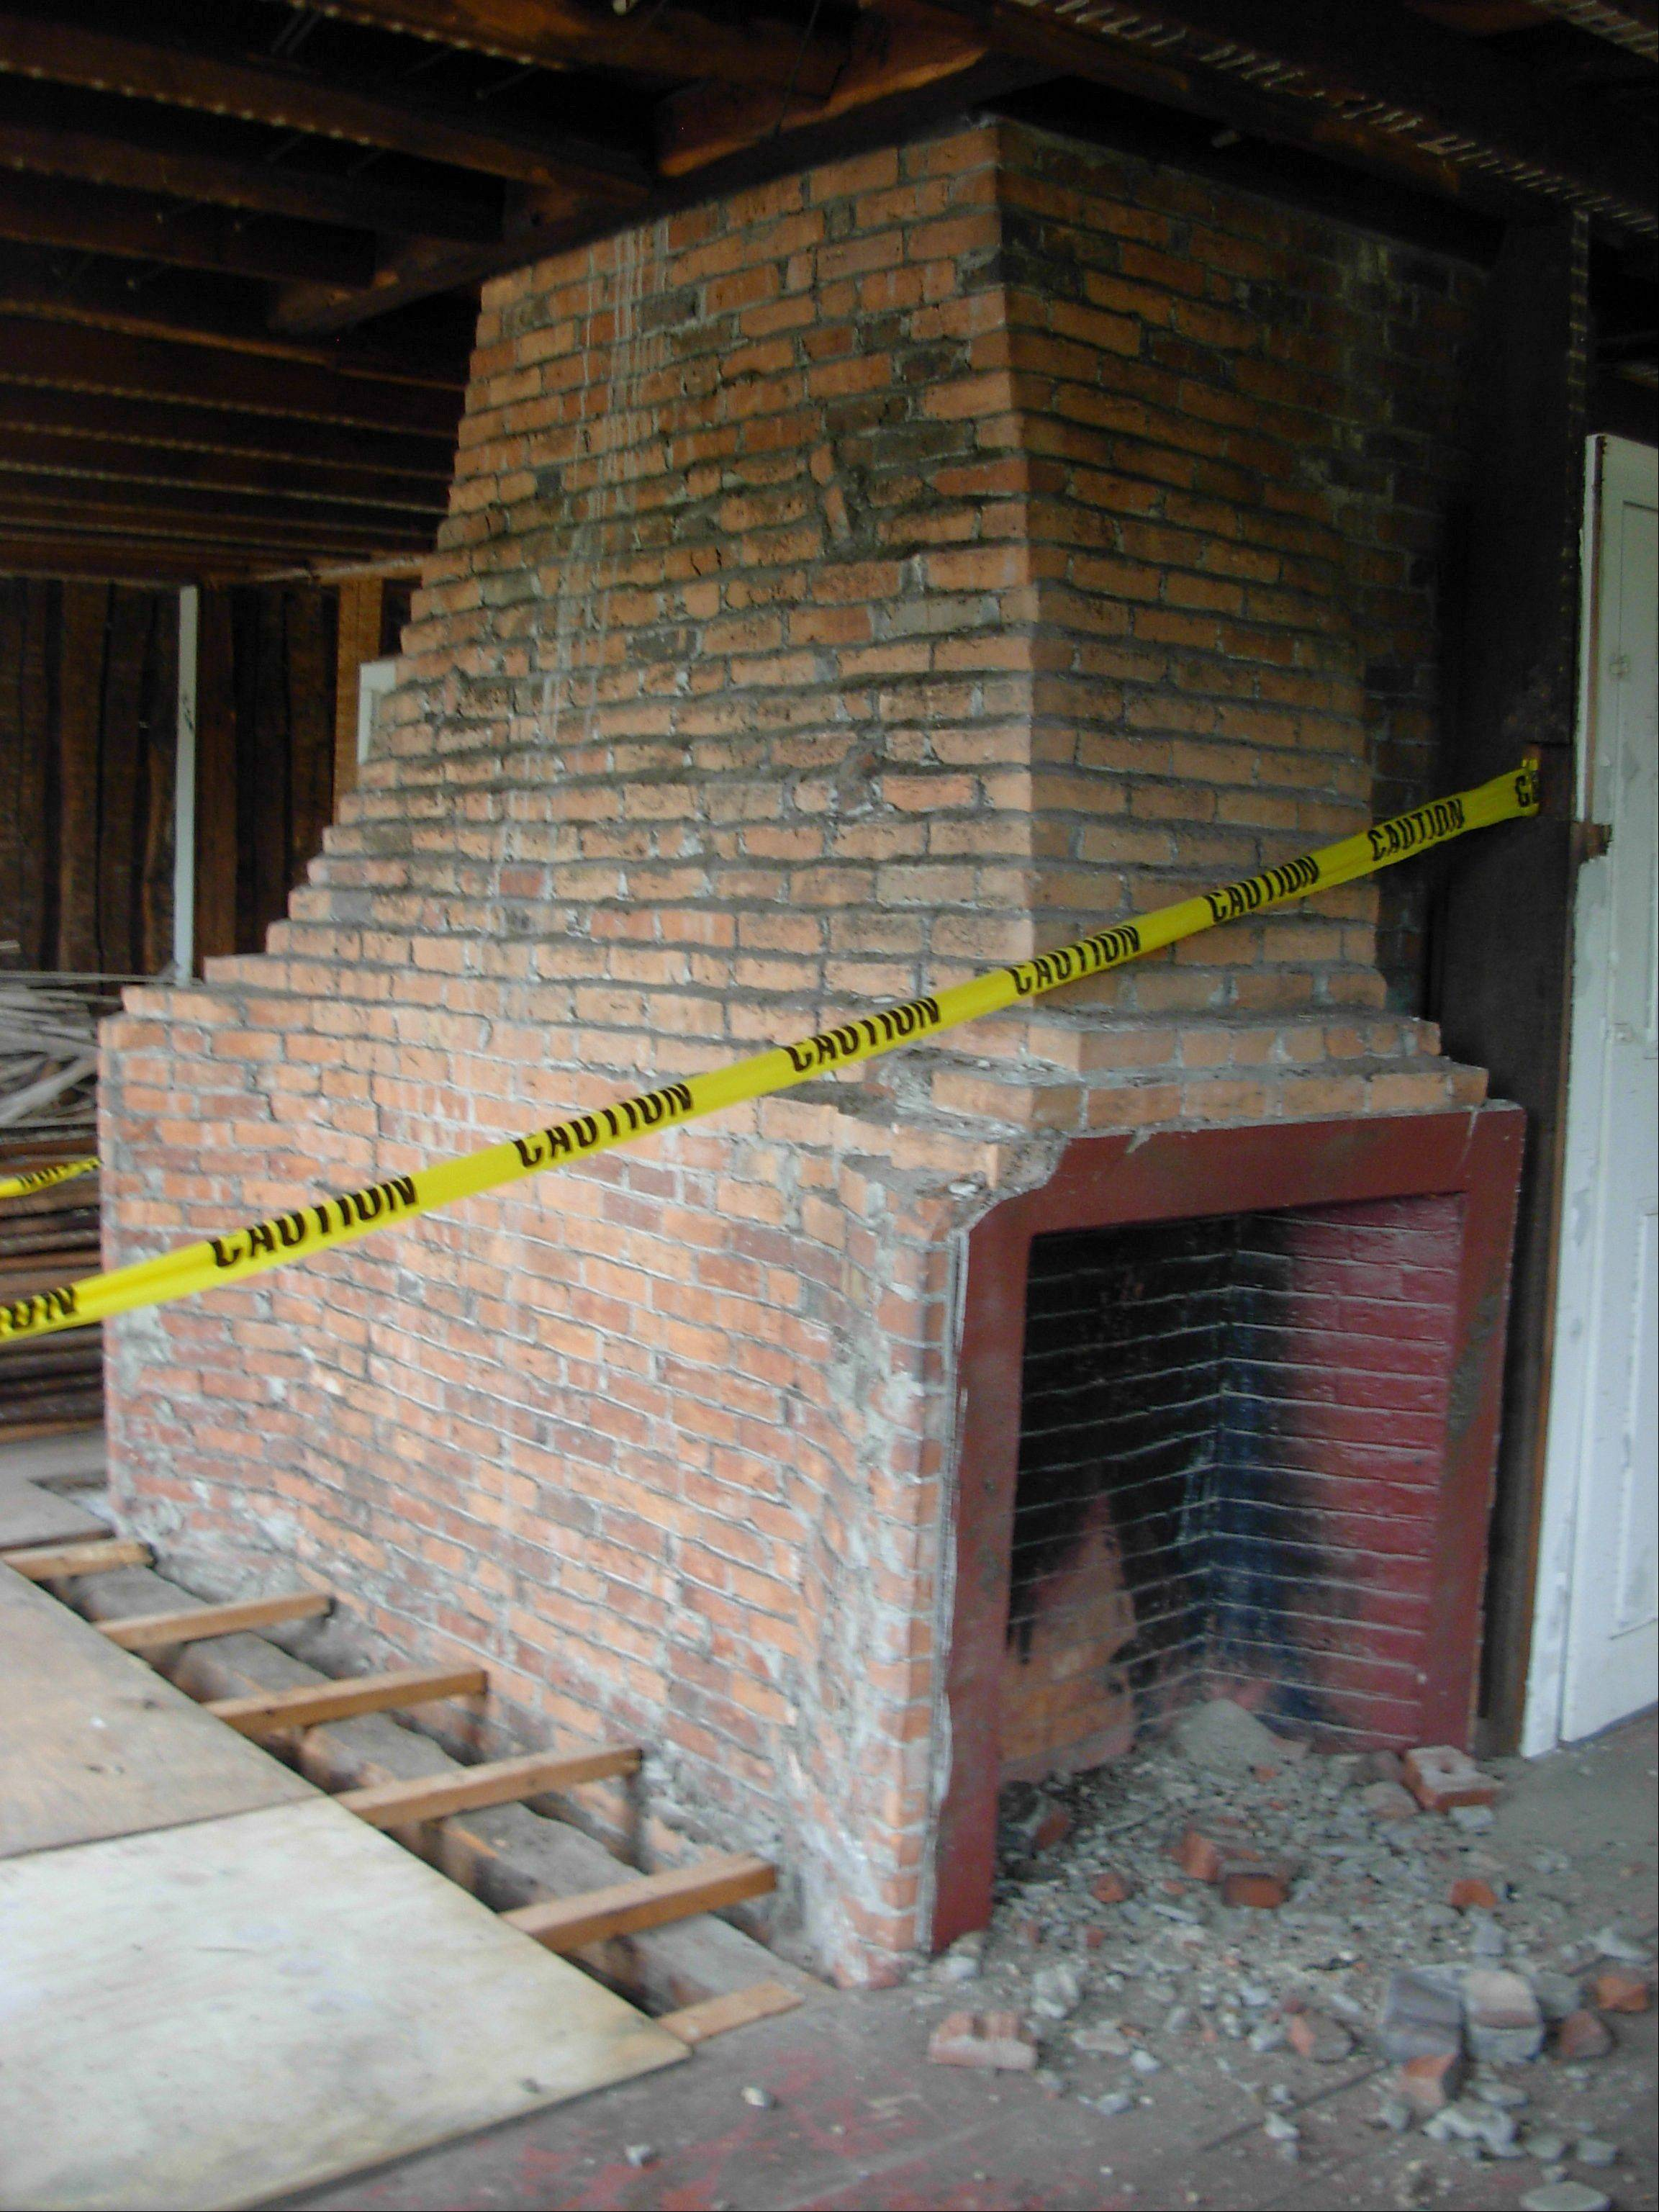 The historic home had an enormous center chimney for six fireplaces and a bake oven. Terri Rosenthal had the house dismantled and plans to rebuild it in Virginia.